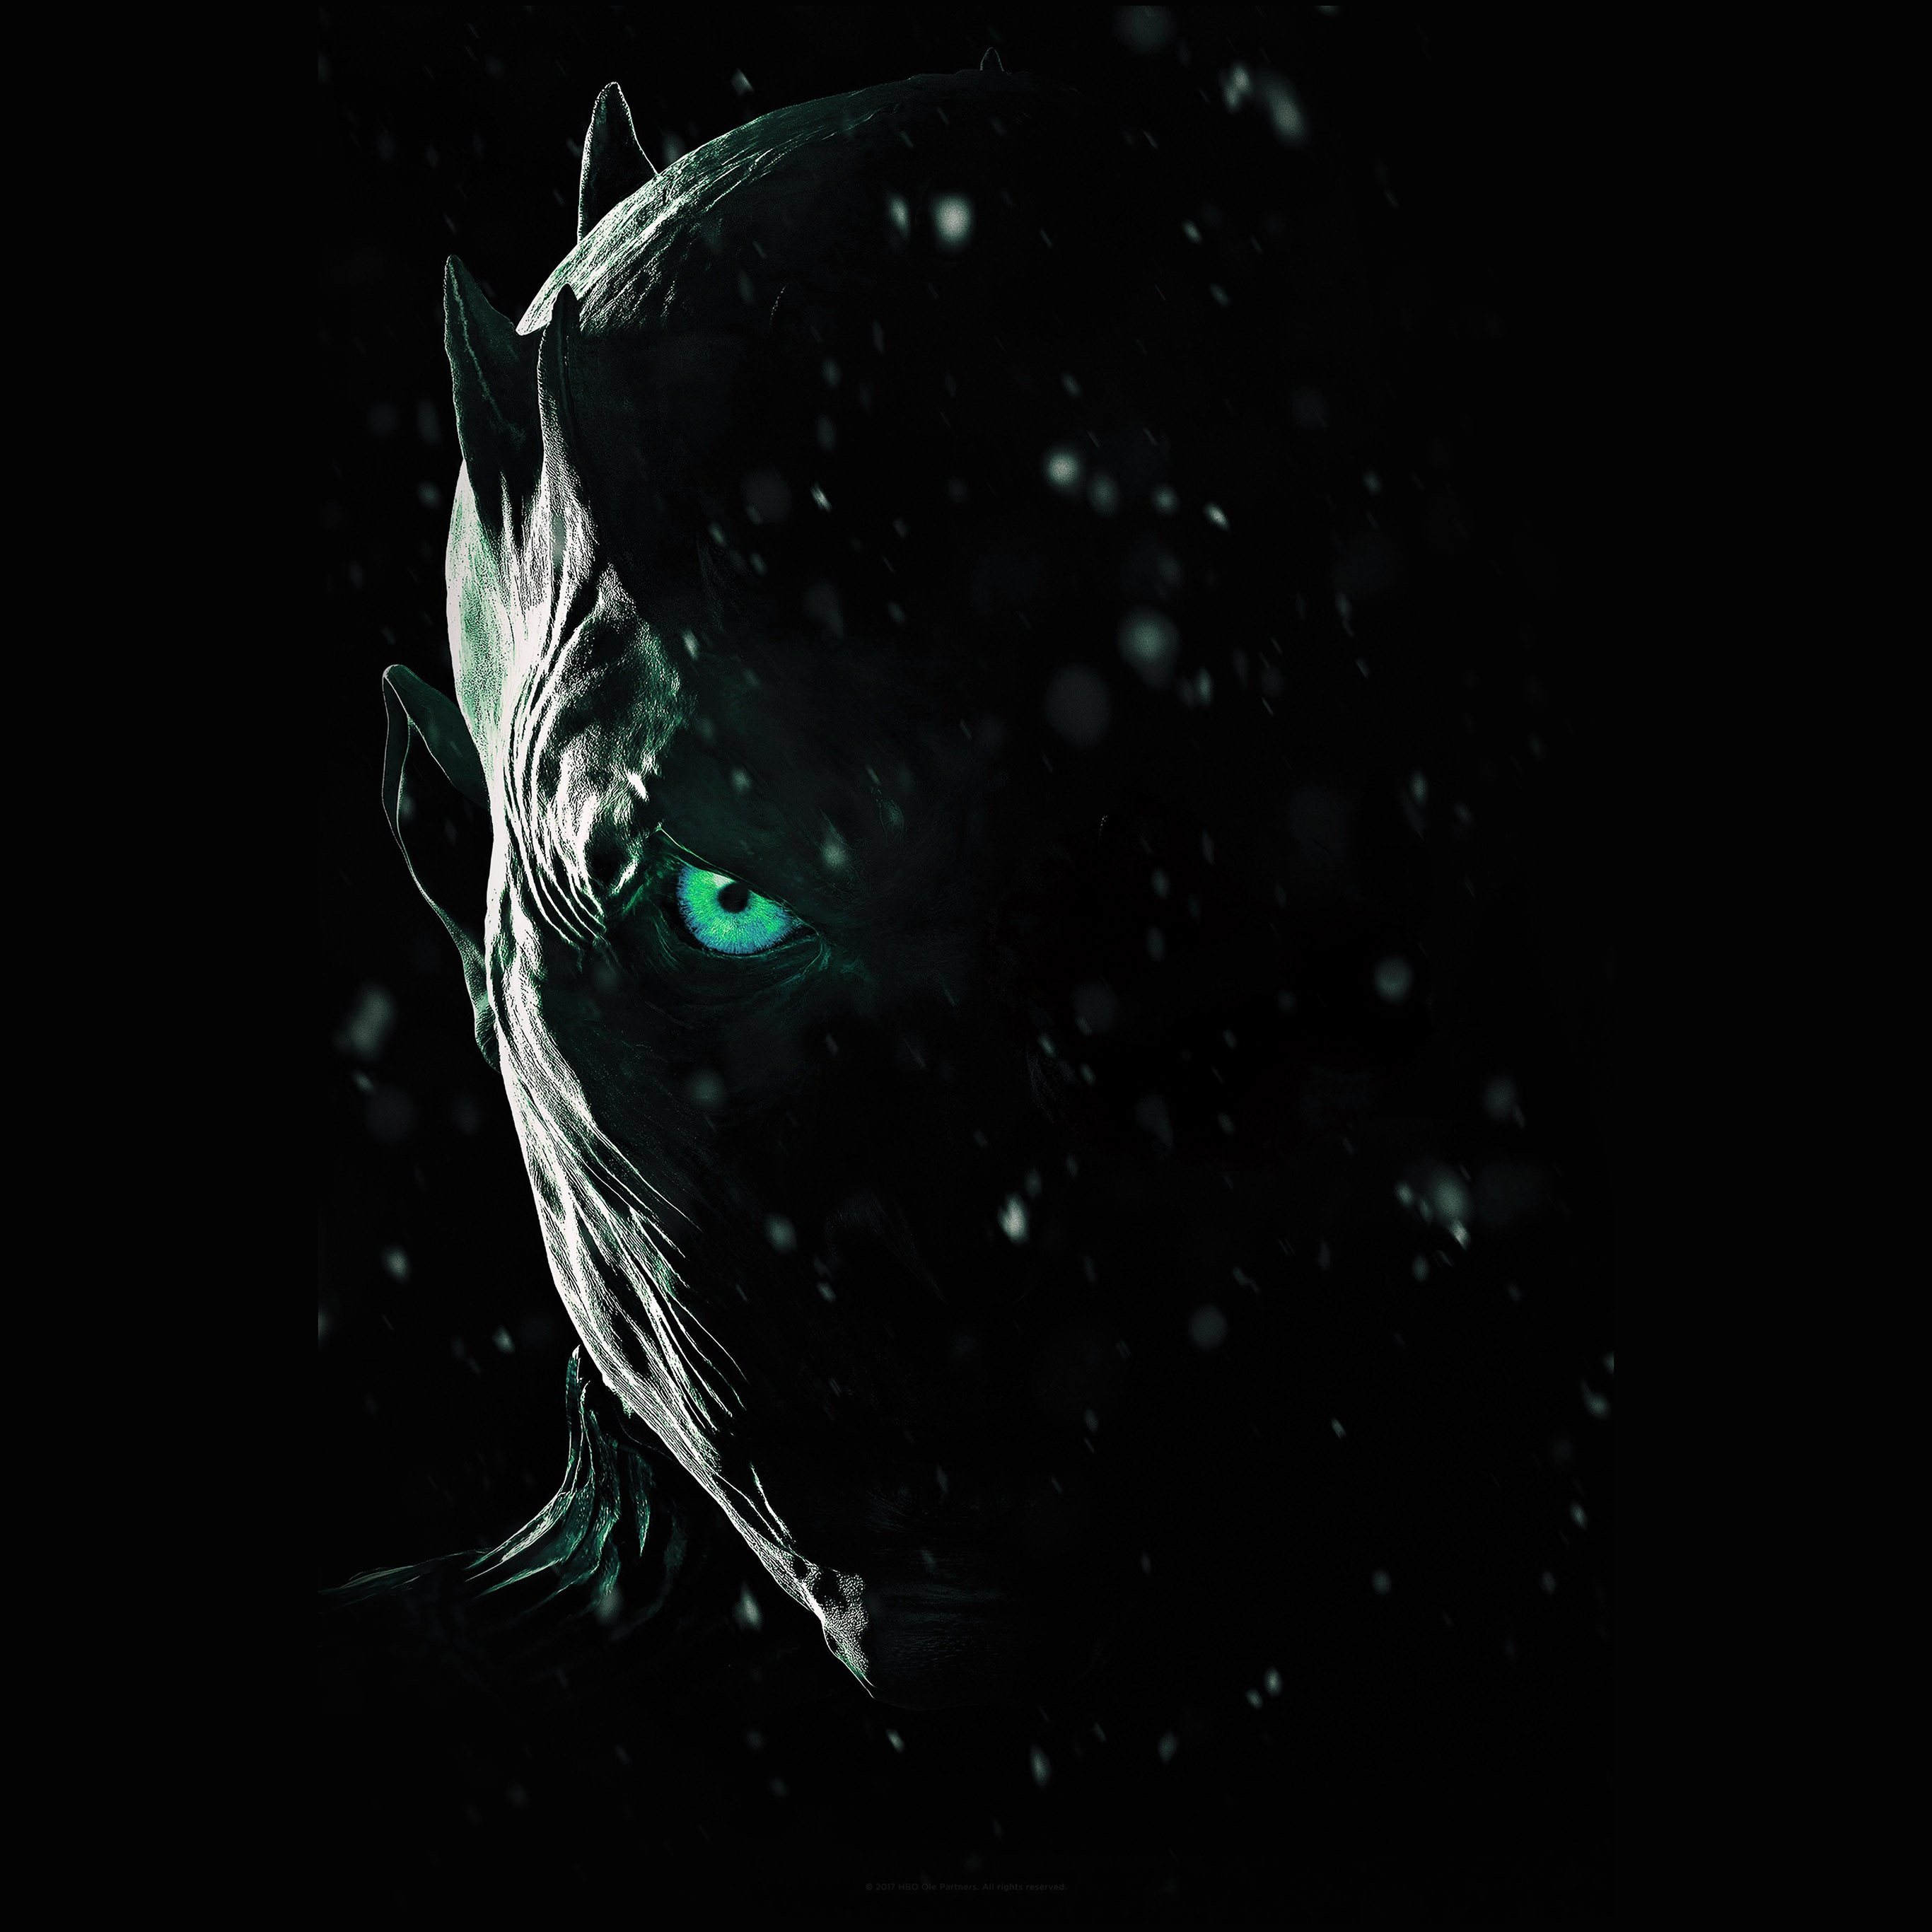 Bf23 Horror Scary Face Dark Anime Eye Art Wallpaper